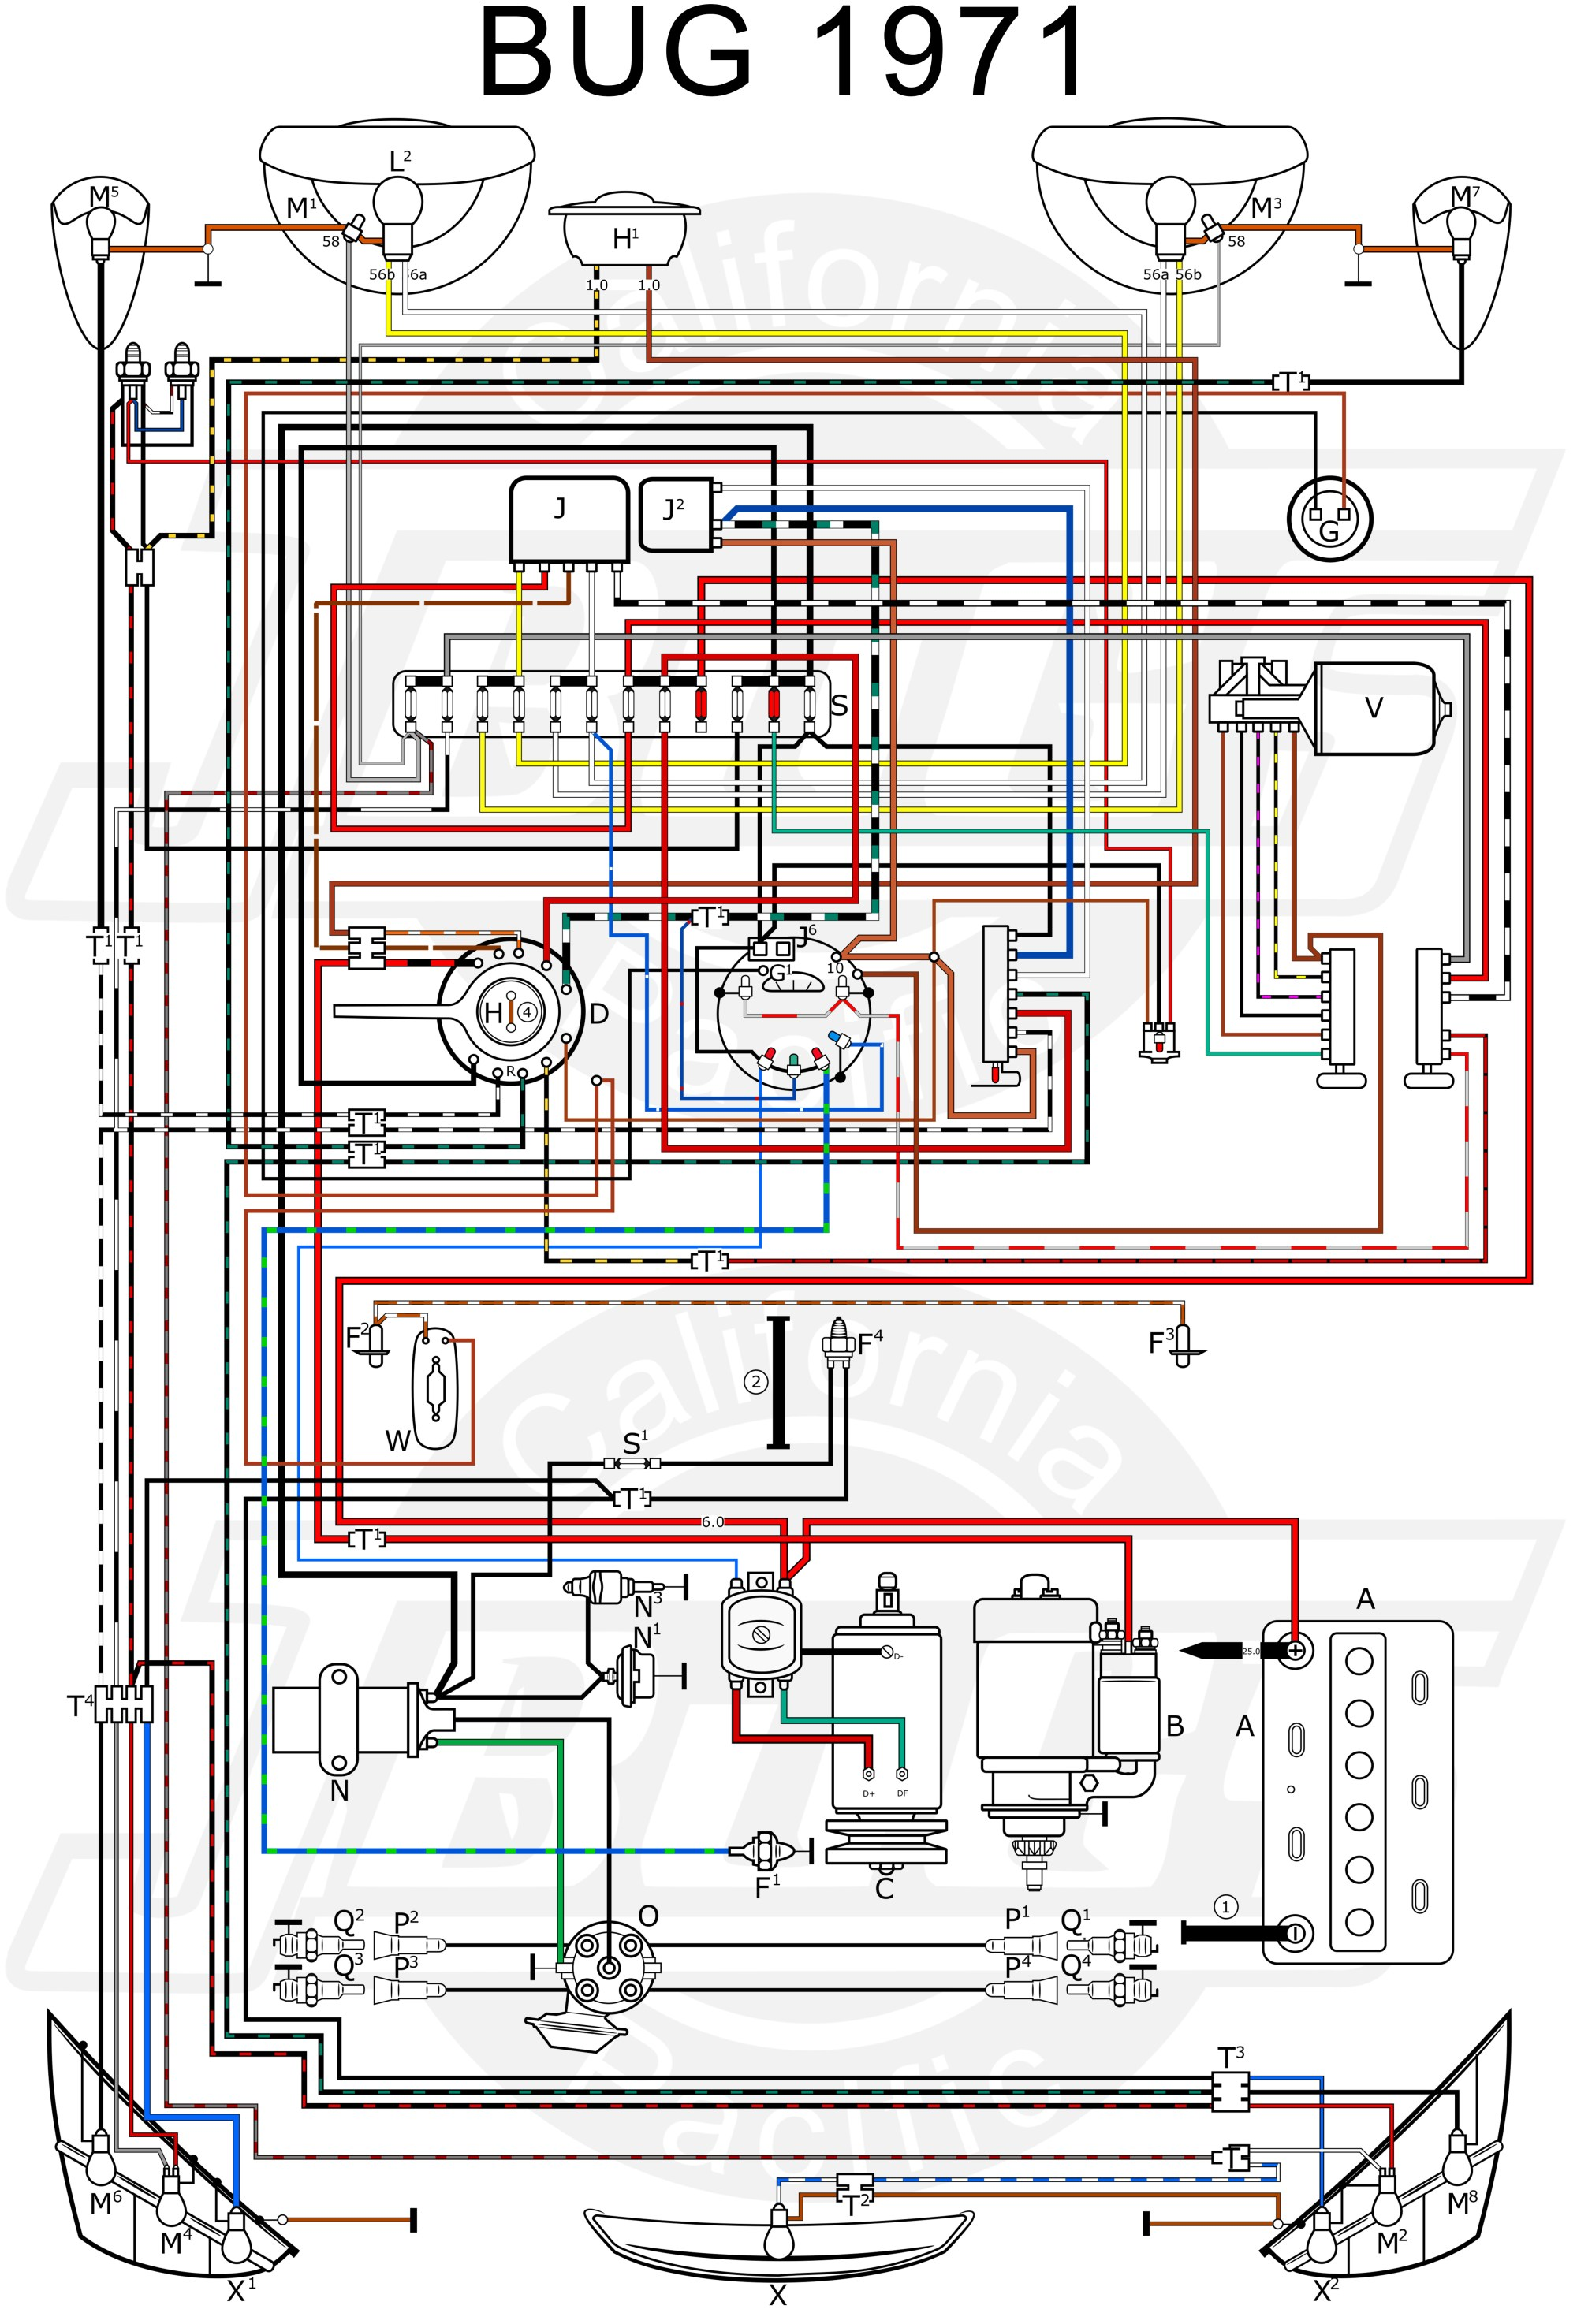 hight resolution of 72 vw engine diagram wiring diagrams schema rh 89 valdeig media de vw 2 0 turbo engine diagram vw 1600 single port